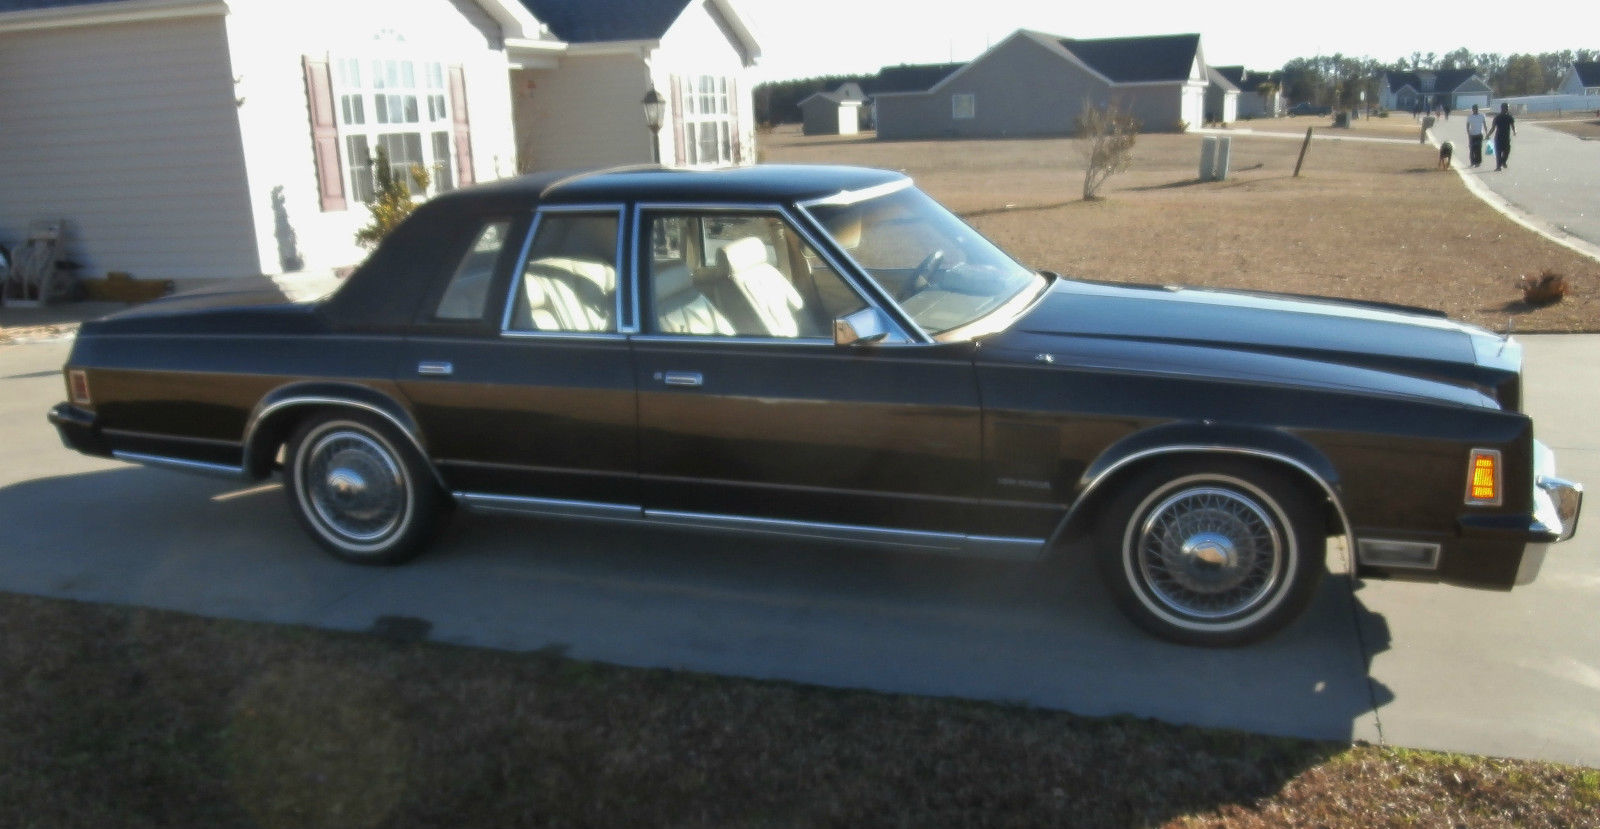 1980 chrysler new yorker 5th avenue edition classic for 1990 chrysler new yorker salon